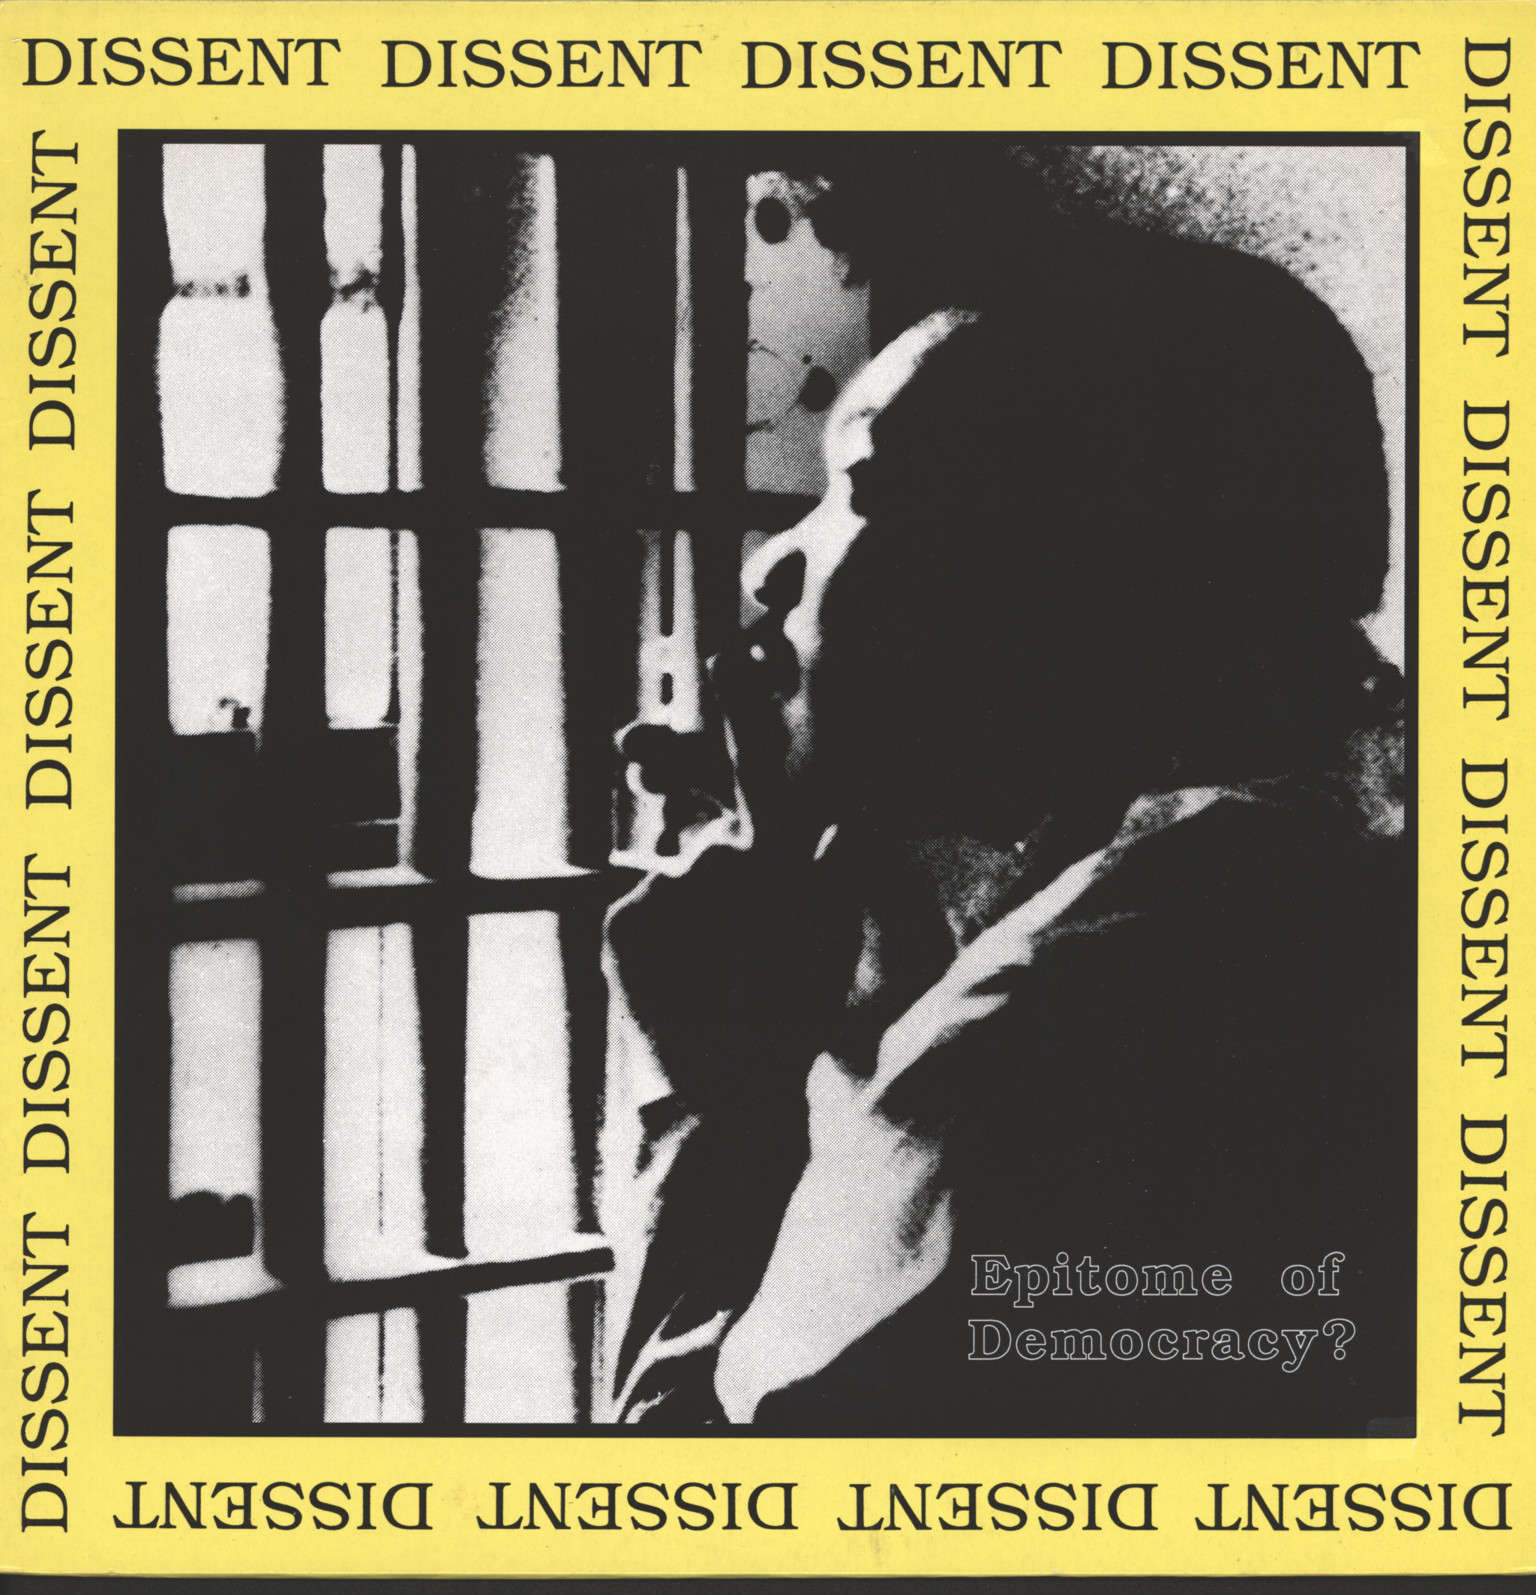 Dissent: Epitome Of Democracy?, LP (Vinyl)